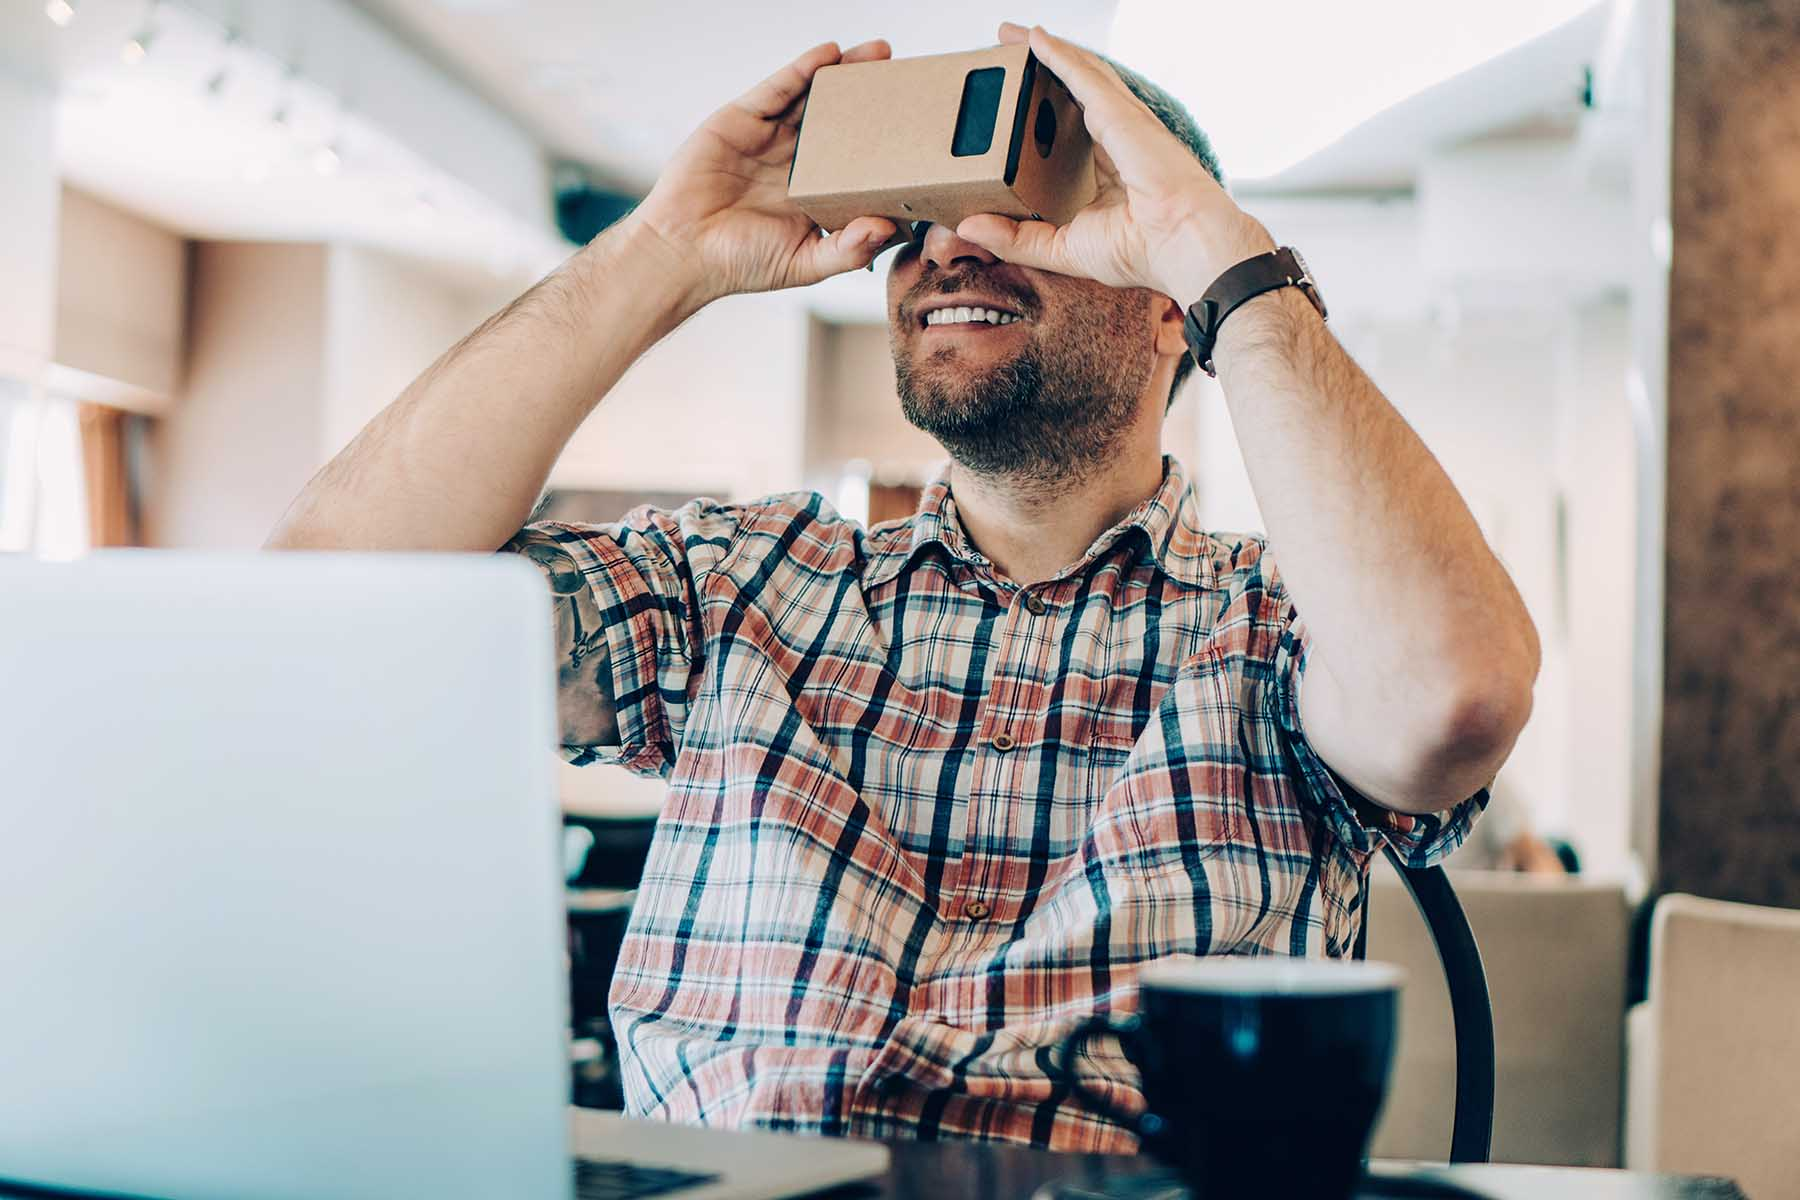 How to Make Your Own Virtual Reality Headset